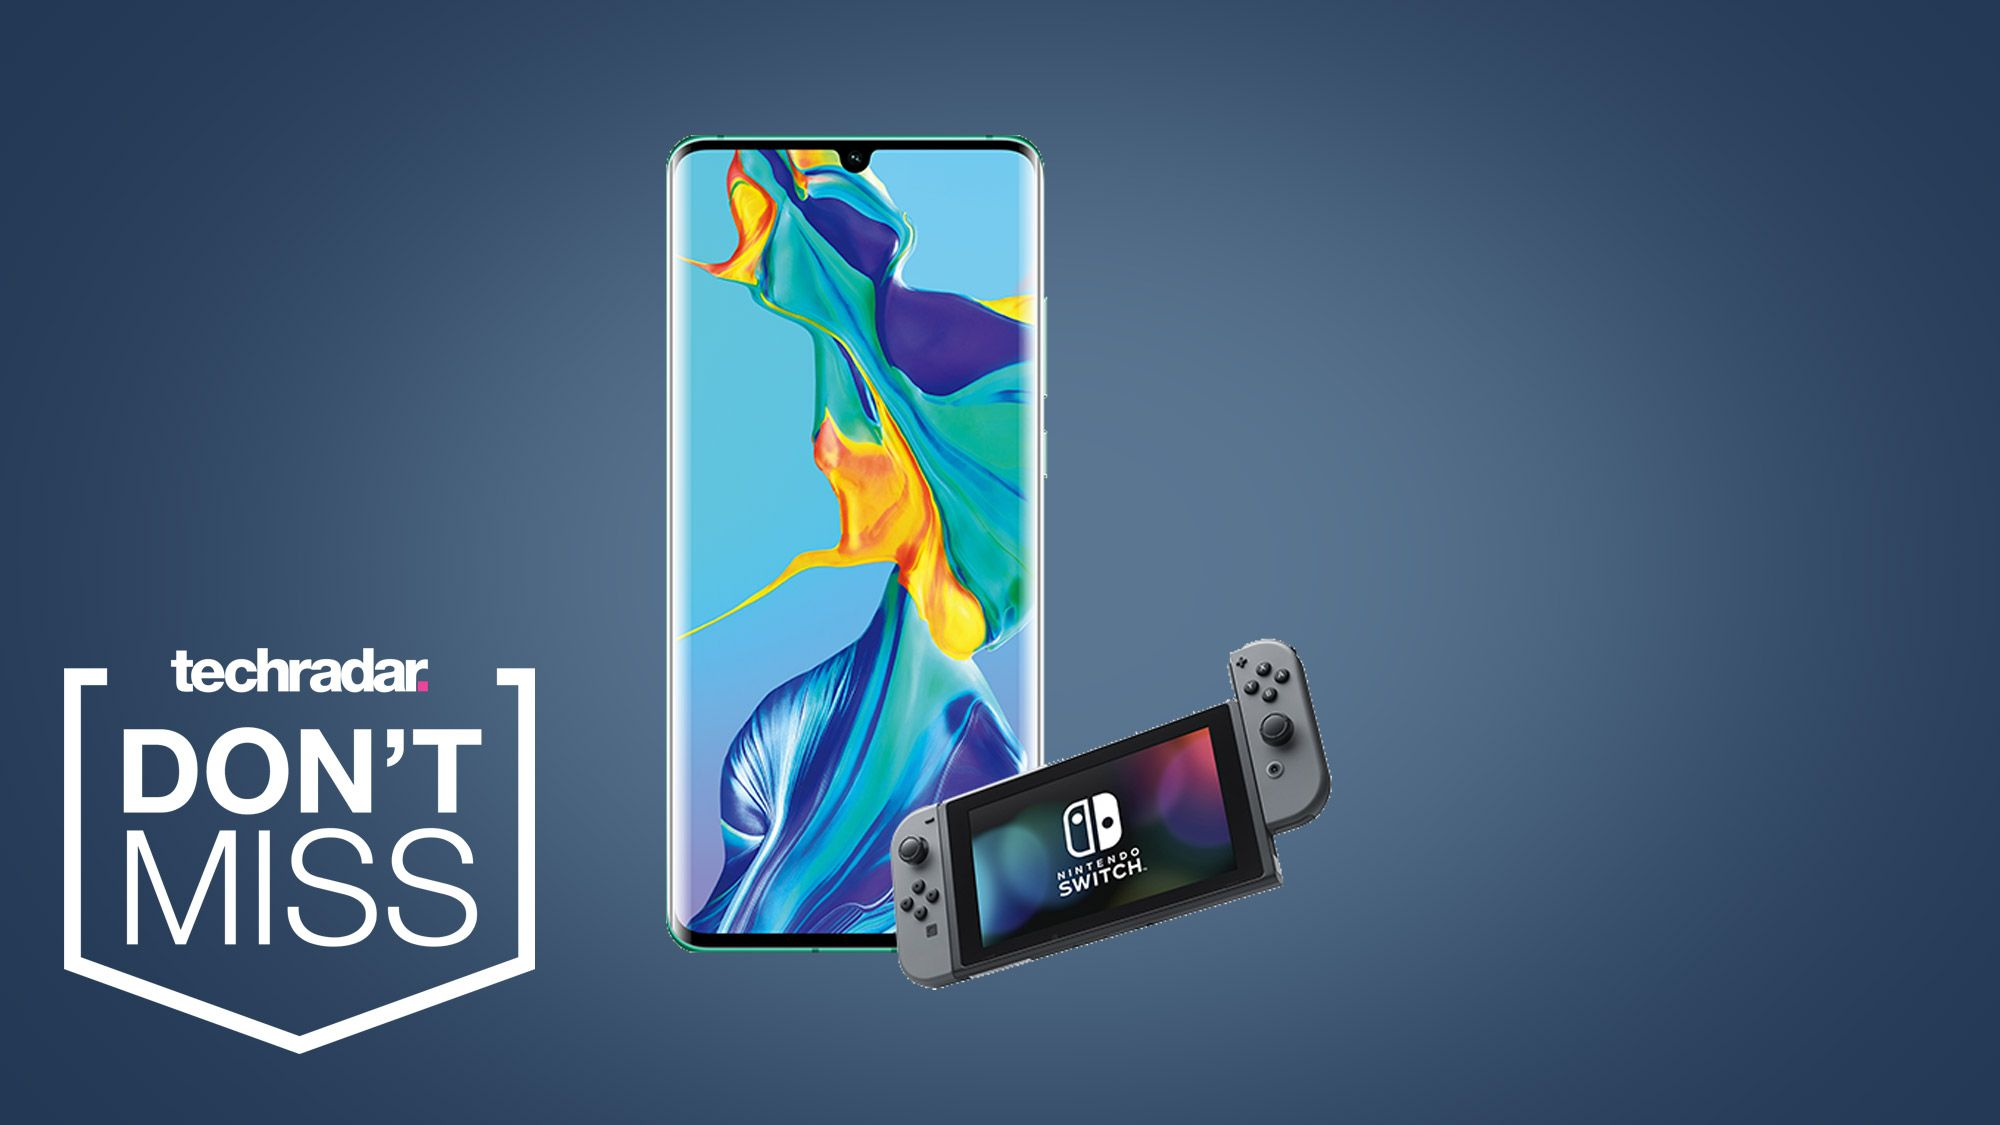 Want A Free Nintendo Switch This Black Friday You Can With These Huawei P30 Deal Huawei Nintendo Switch Iphone Deals